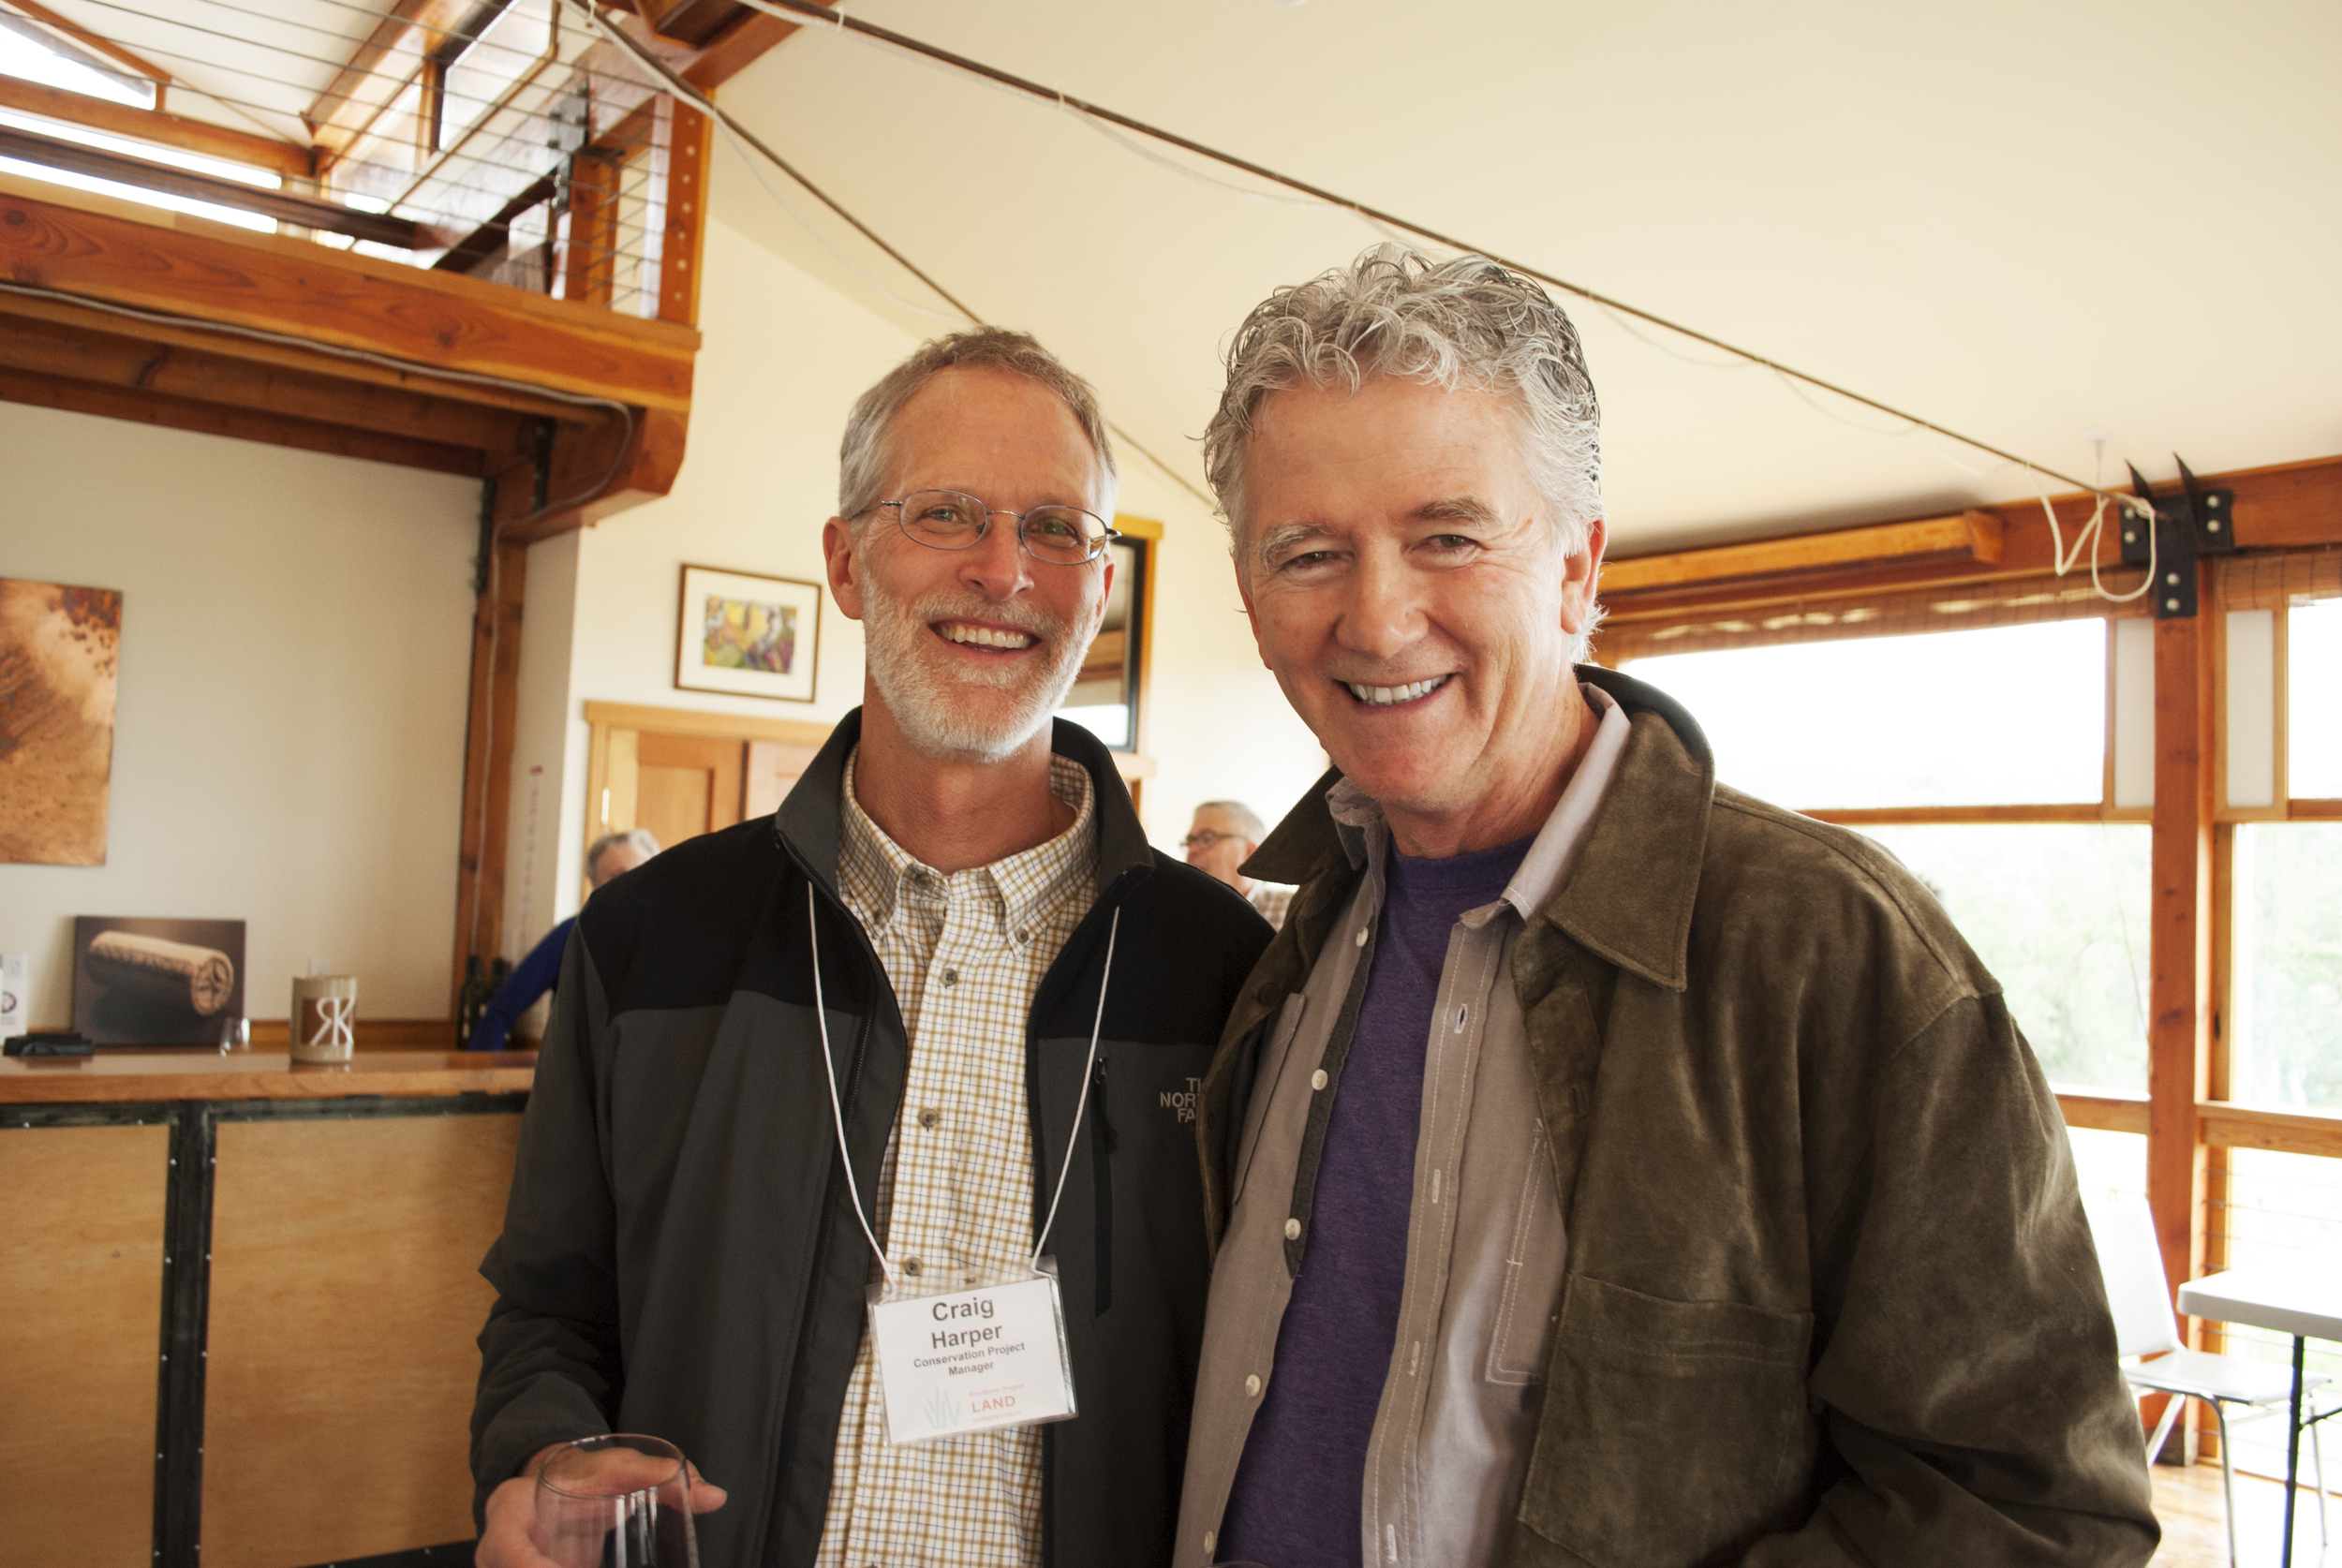 Craig Harper, Conservation Project Manager, and Patrick Duffy, Heart of the Rogue Campaign Chair, smiling after announcing the OWEB award.